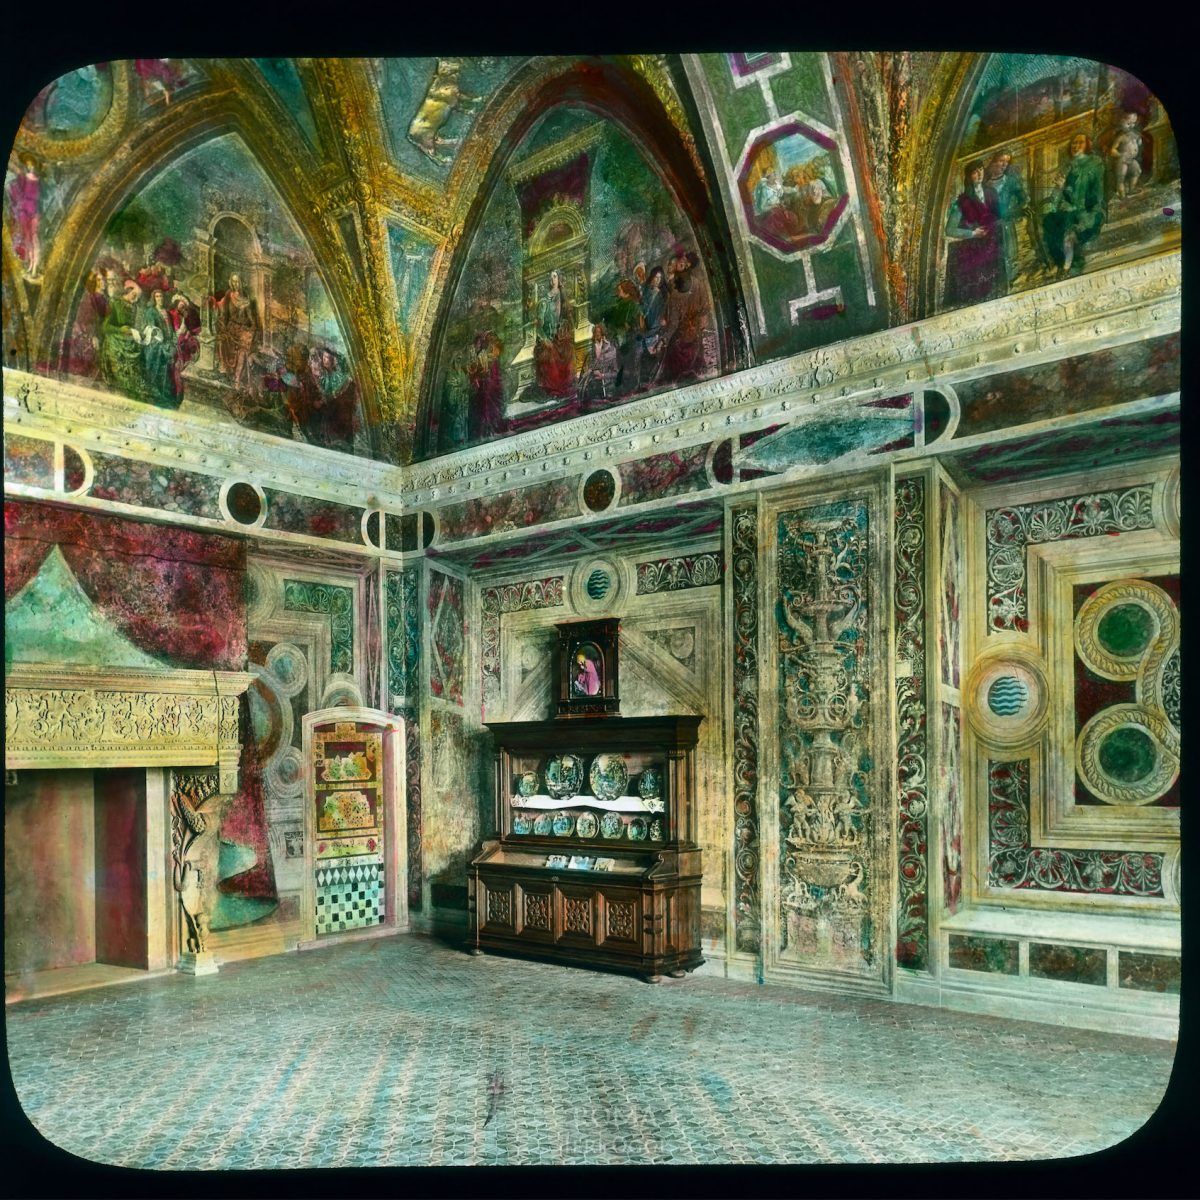 Vatican City. Apostolic Palace, Borgia Apartment: interior, Room of the Liberal Arts with Pinturicchio frescoes View in tinted lantern slide, ca. 1919-1938. This part of the palace was built ca. 1492-1503.